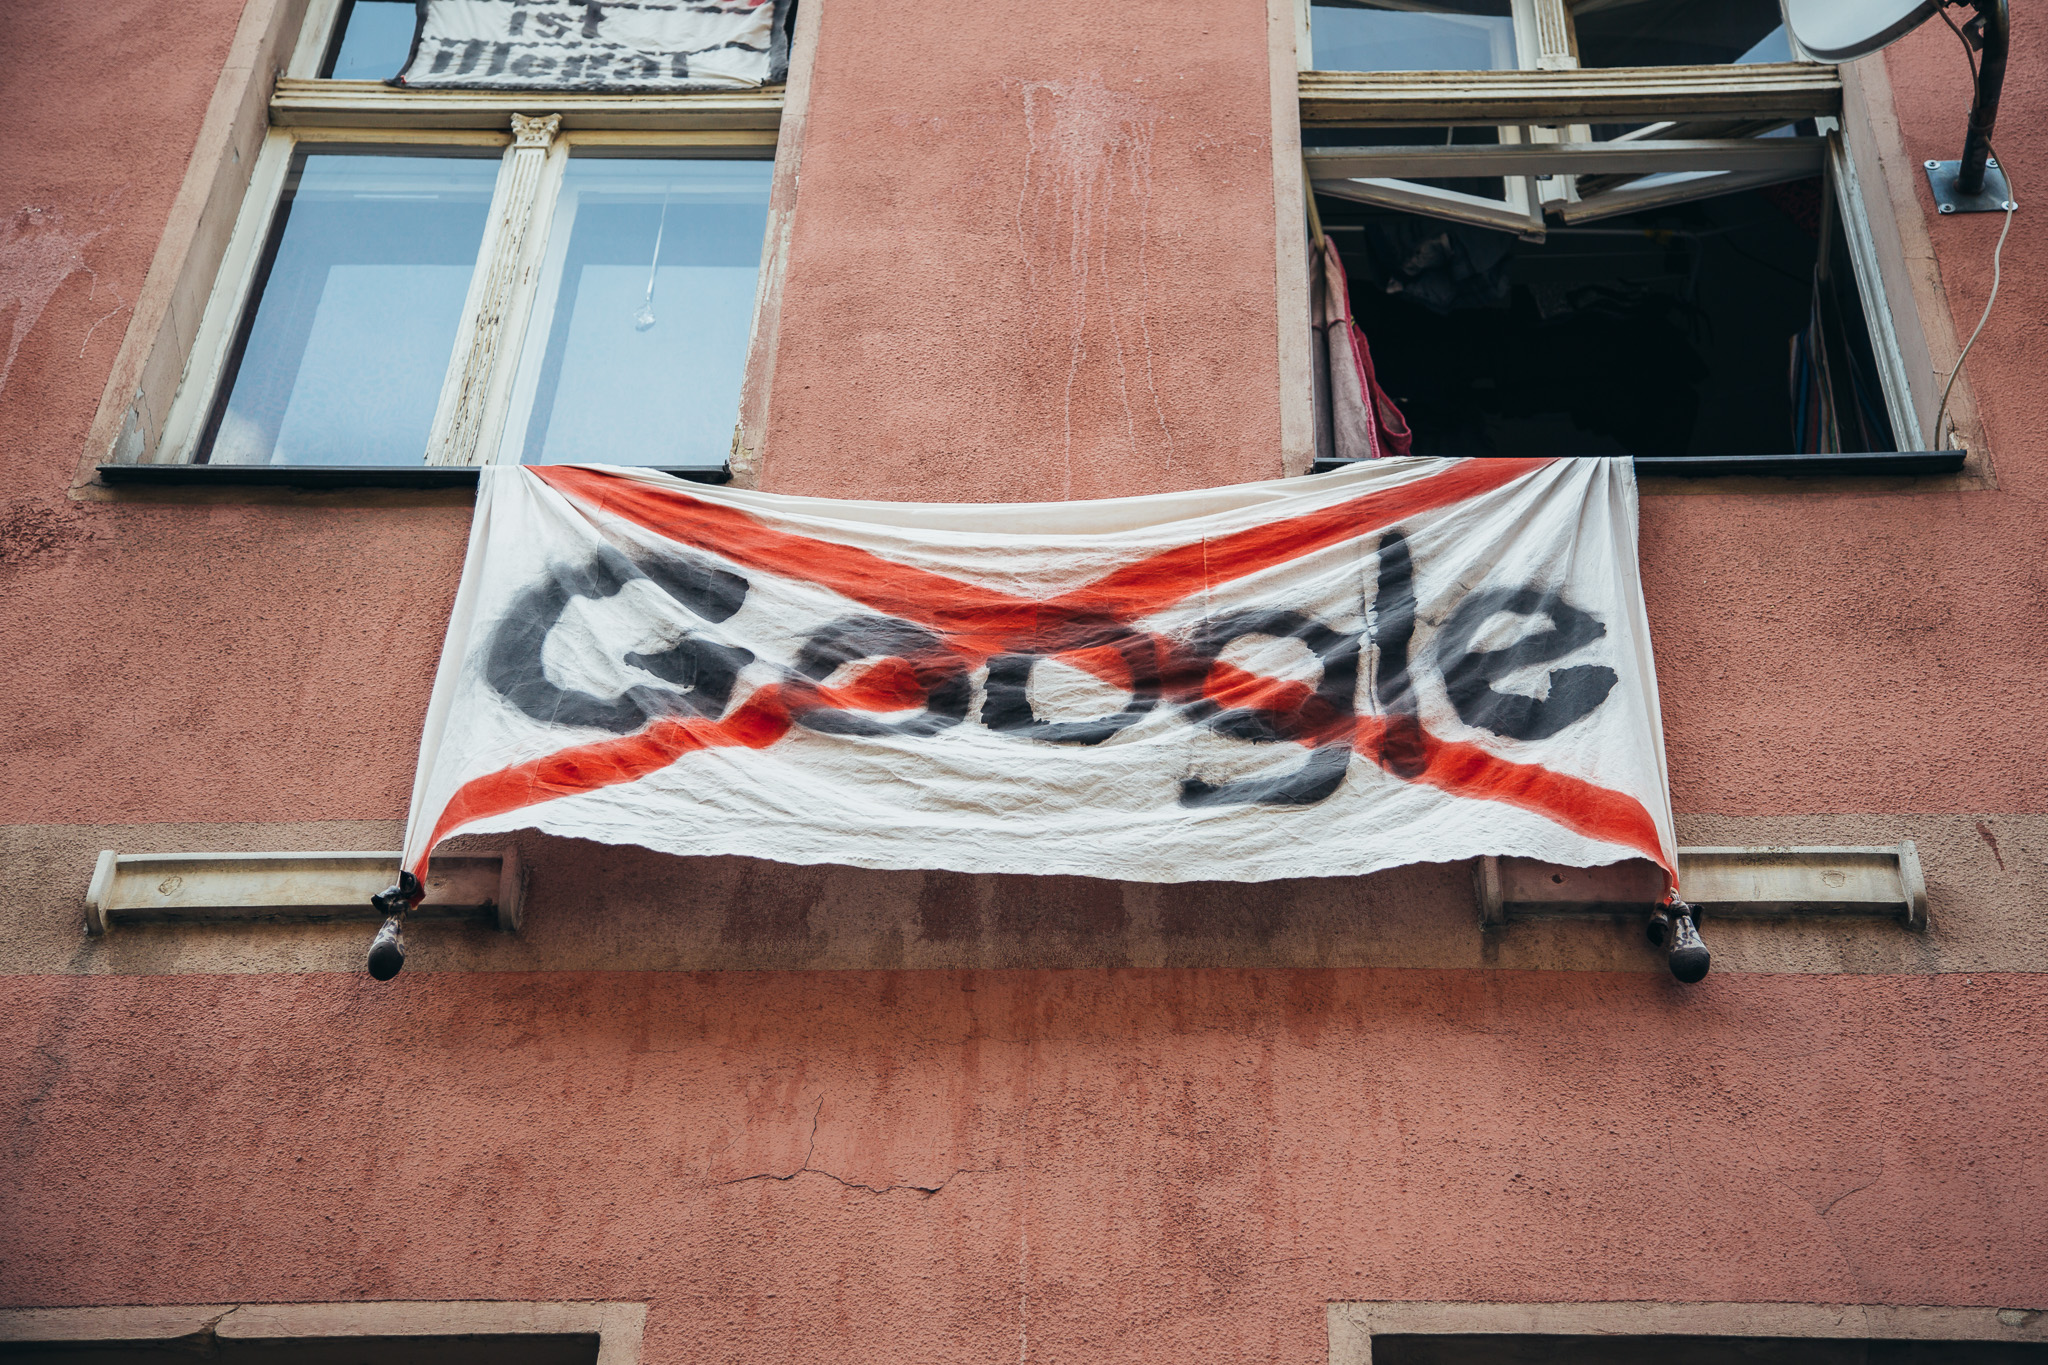 20.08.2018  Google just moved into Berlin, and people aren't happy.